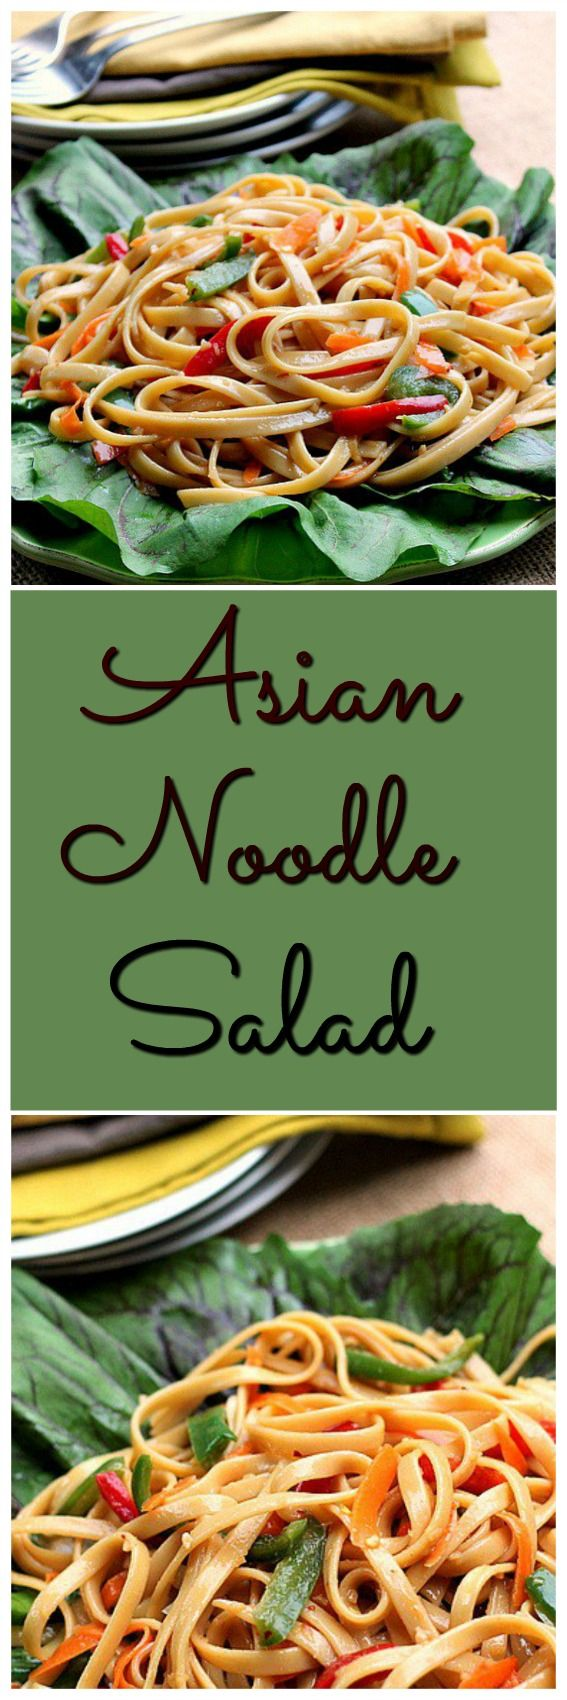 Asian Noodle Salad...The noodles in this delicious Asian Noodle Salad make it hardy, so much so it could be eaten as a meatless meal, add grilled meat and make it a satisfying dinner.